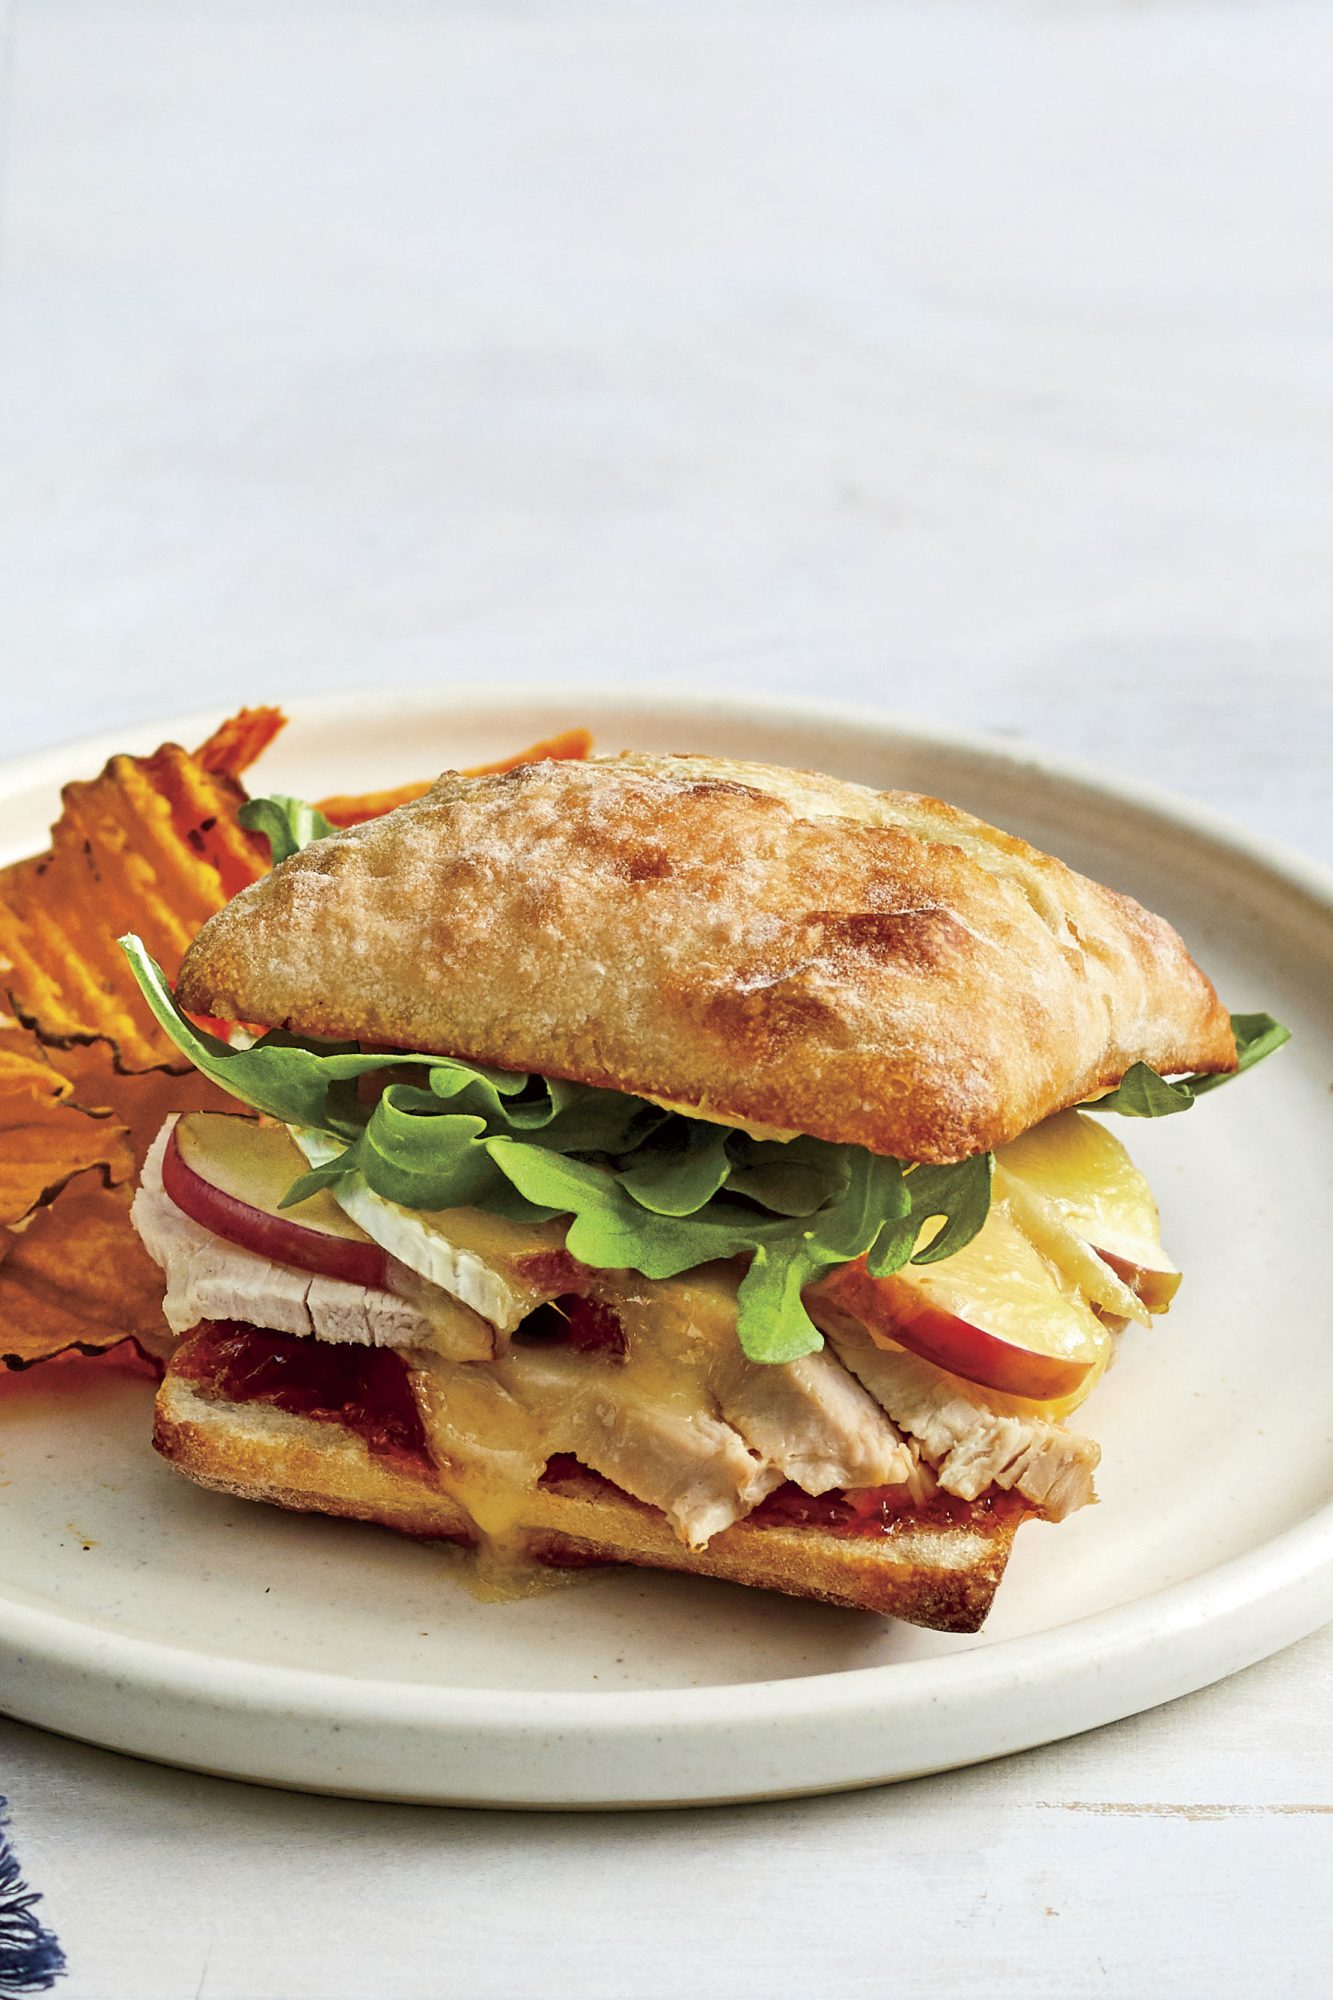 Turkey, Apple, and Brie Sandwich